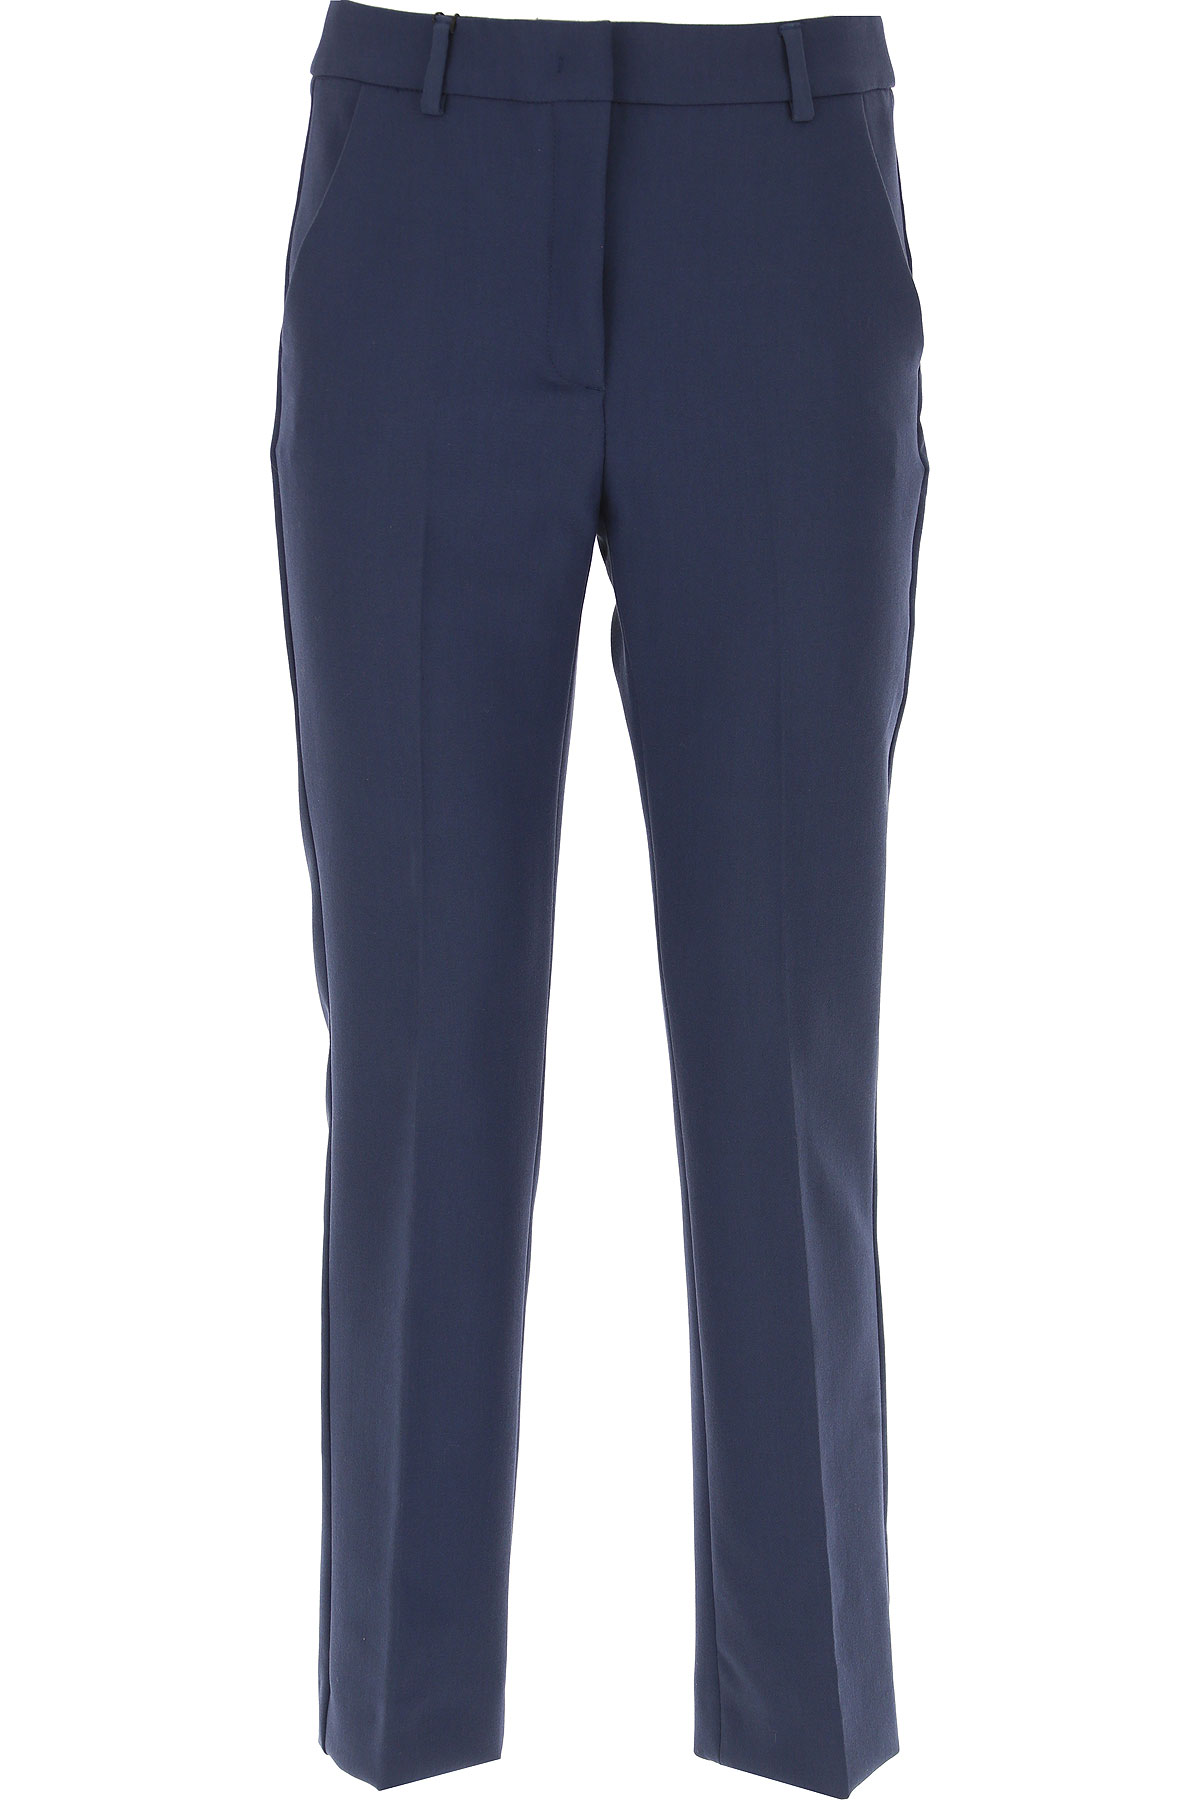 Image of Weekend by Max Mara Pants for Women, Blue, polyester, 2017, 24 26 28 30 32